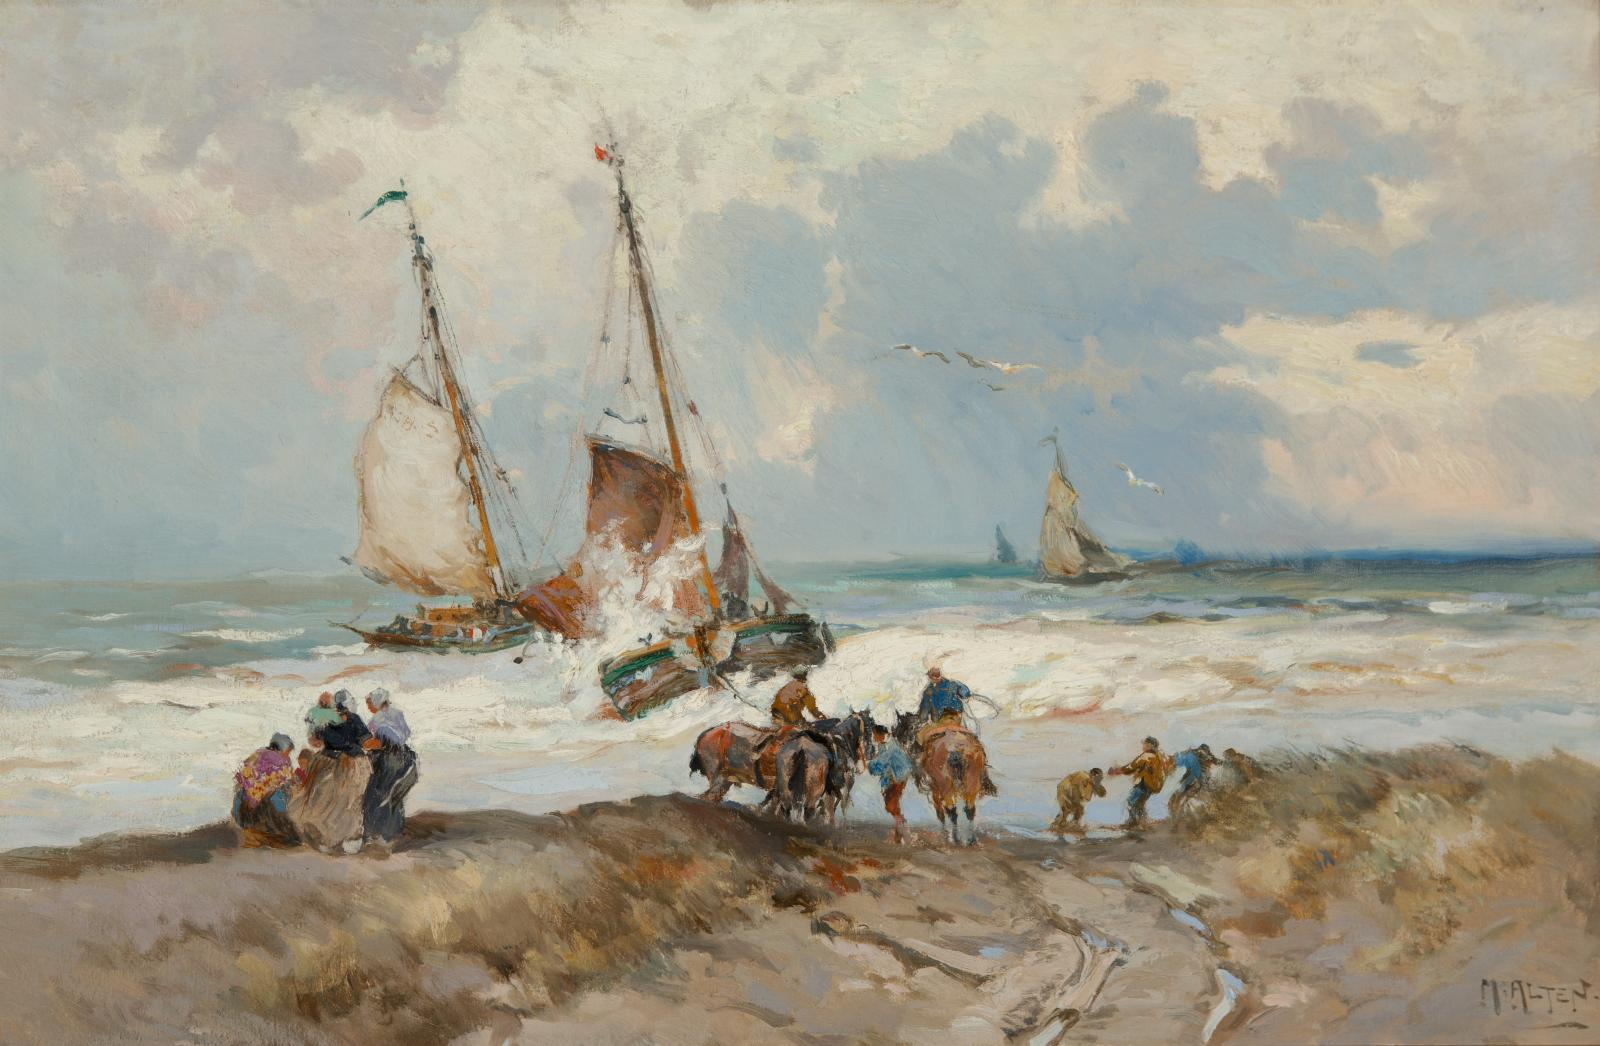 Sail boats in the water with multiple people and horses along the shoreline of the water on the beach.